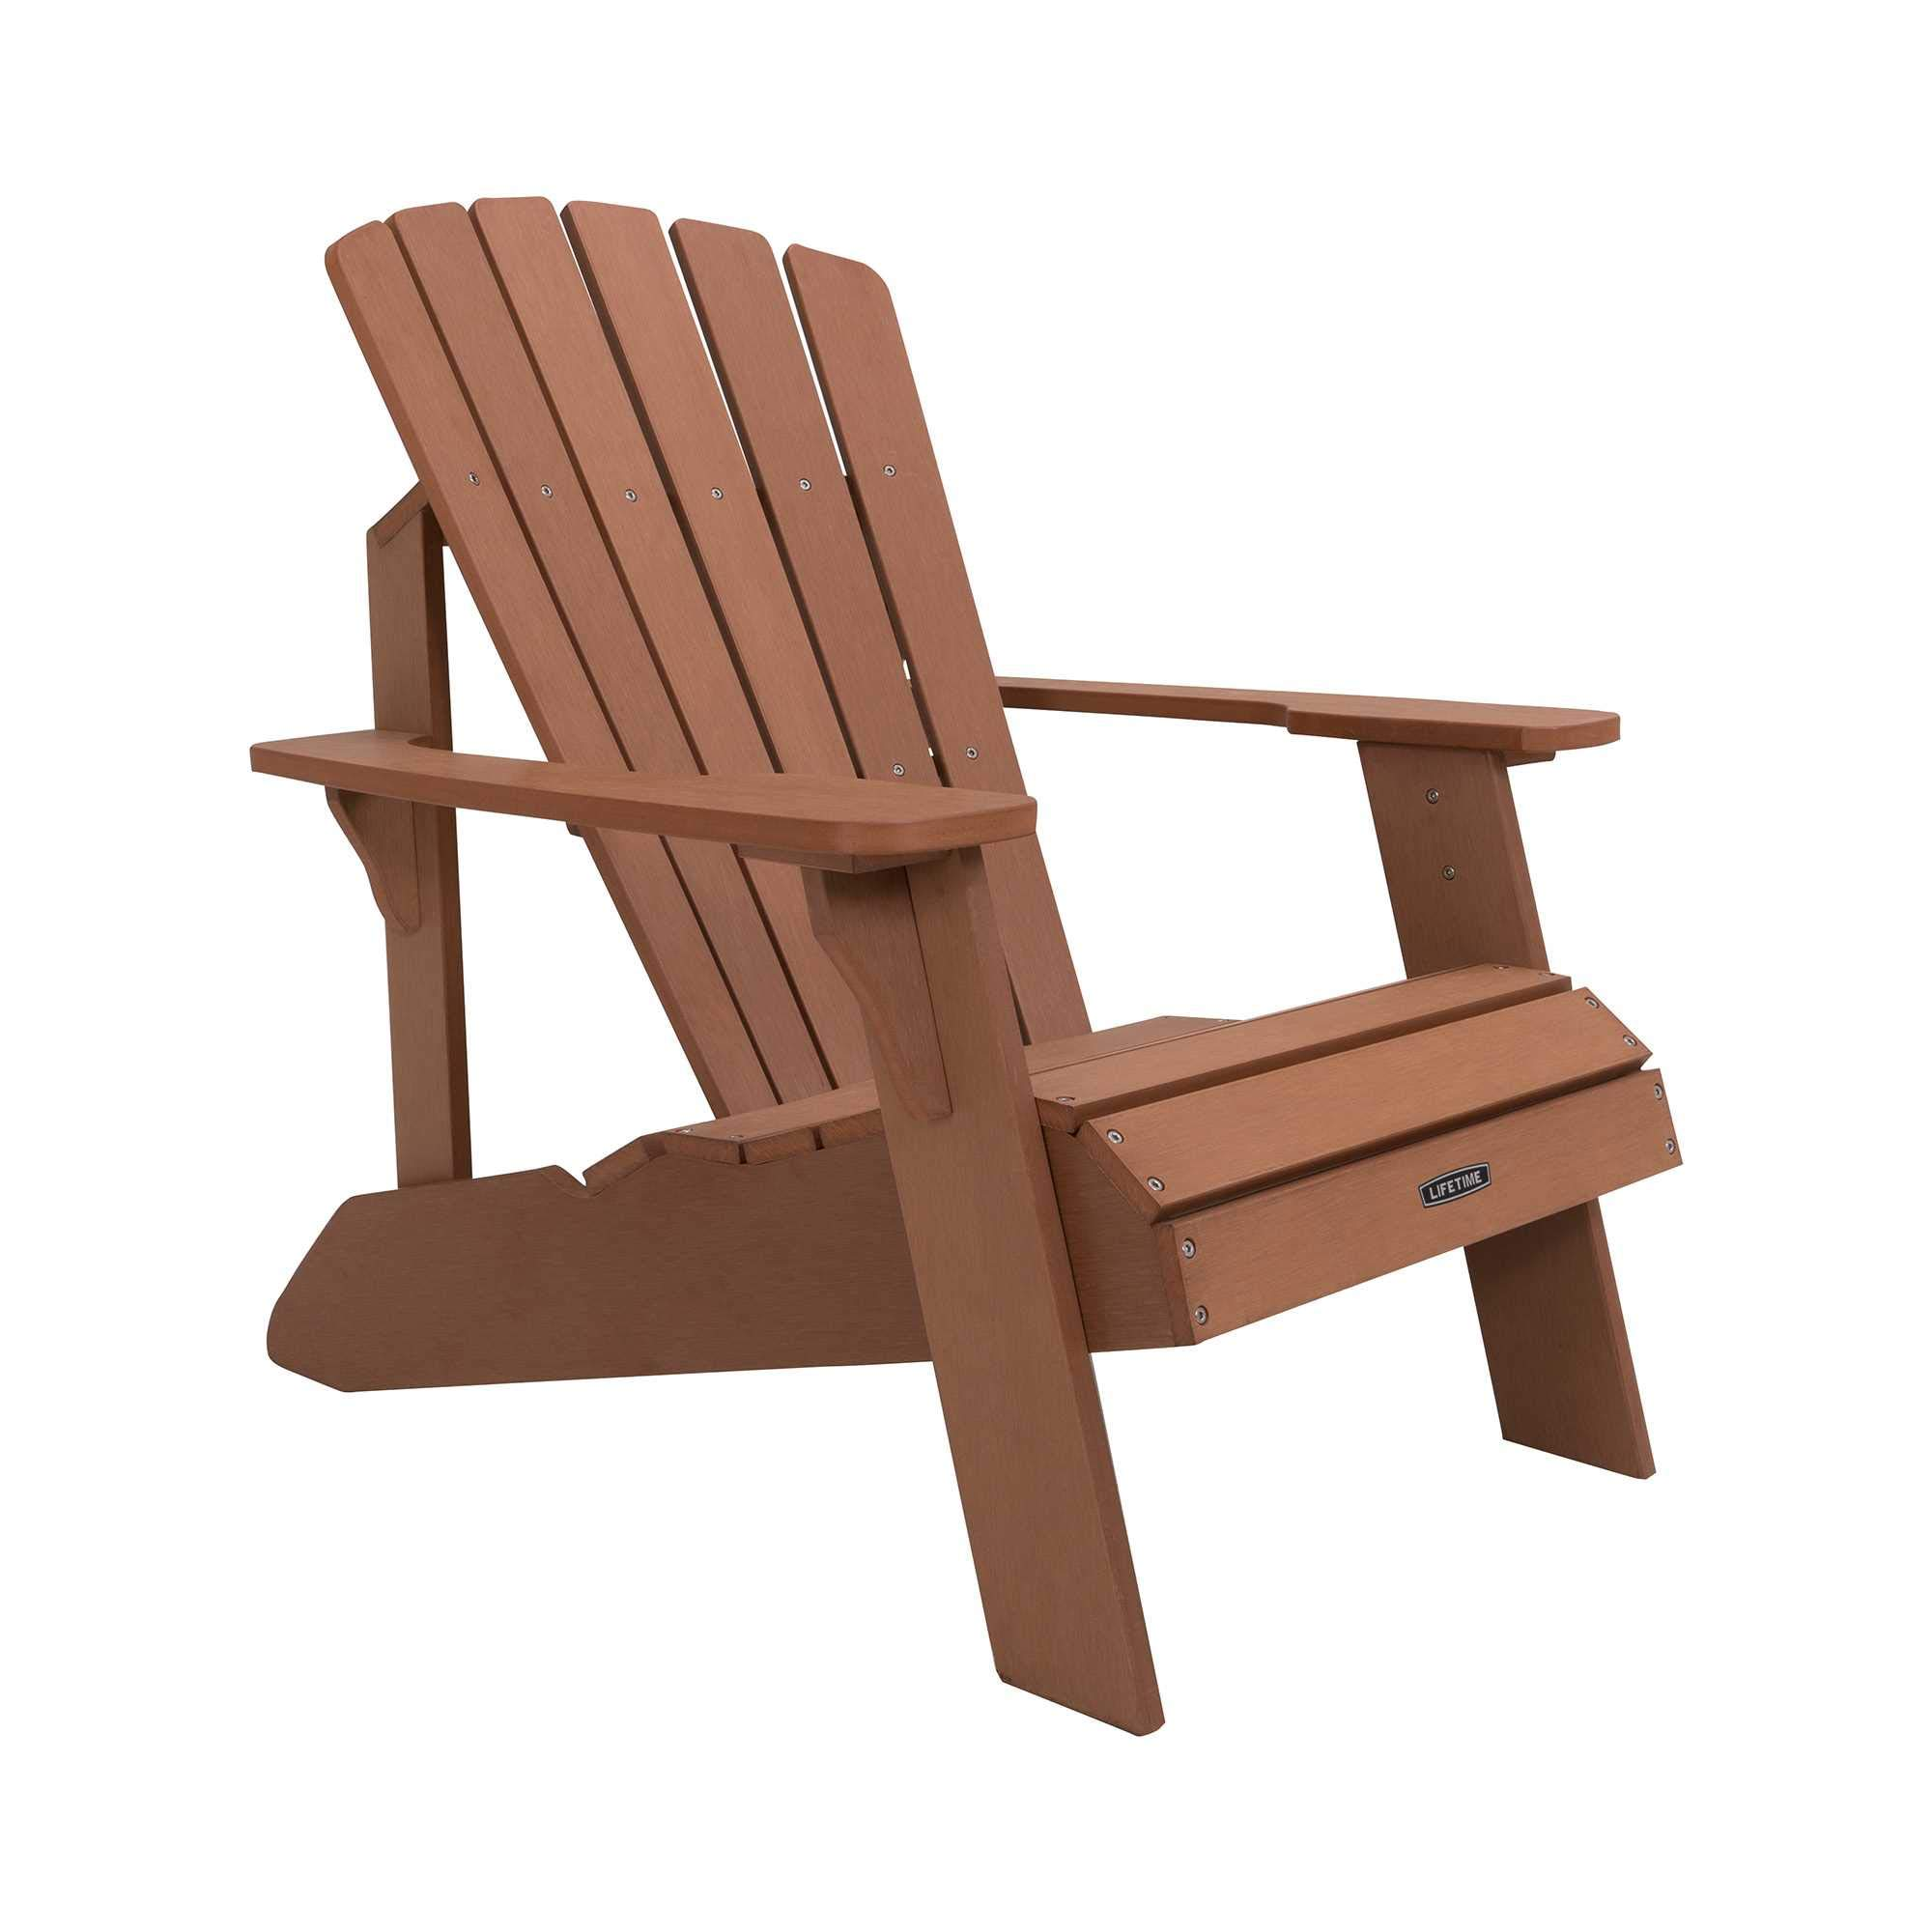 Lifetime Faux Wood Adirondack Chair, Light Brown - 60064 by Lifetime